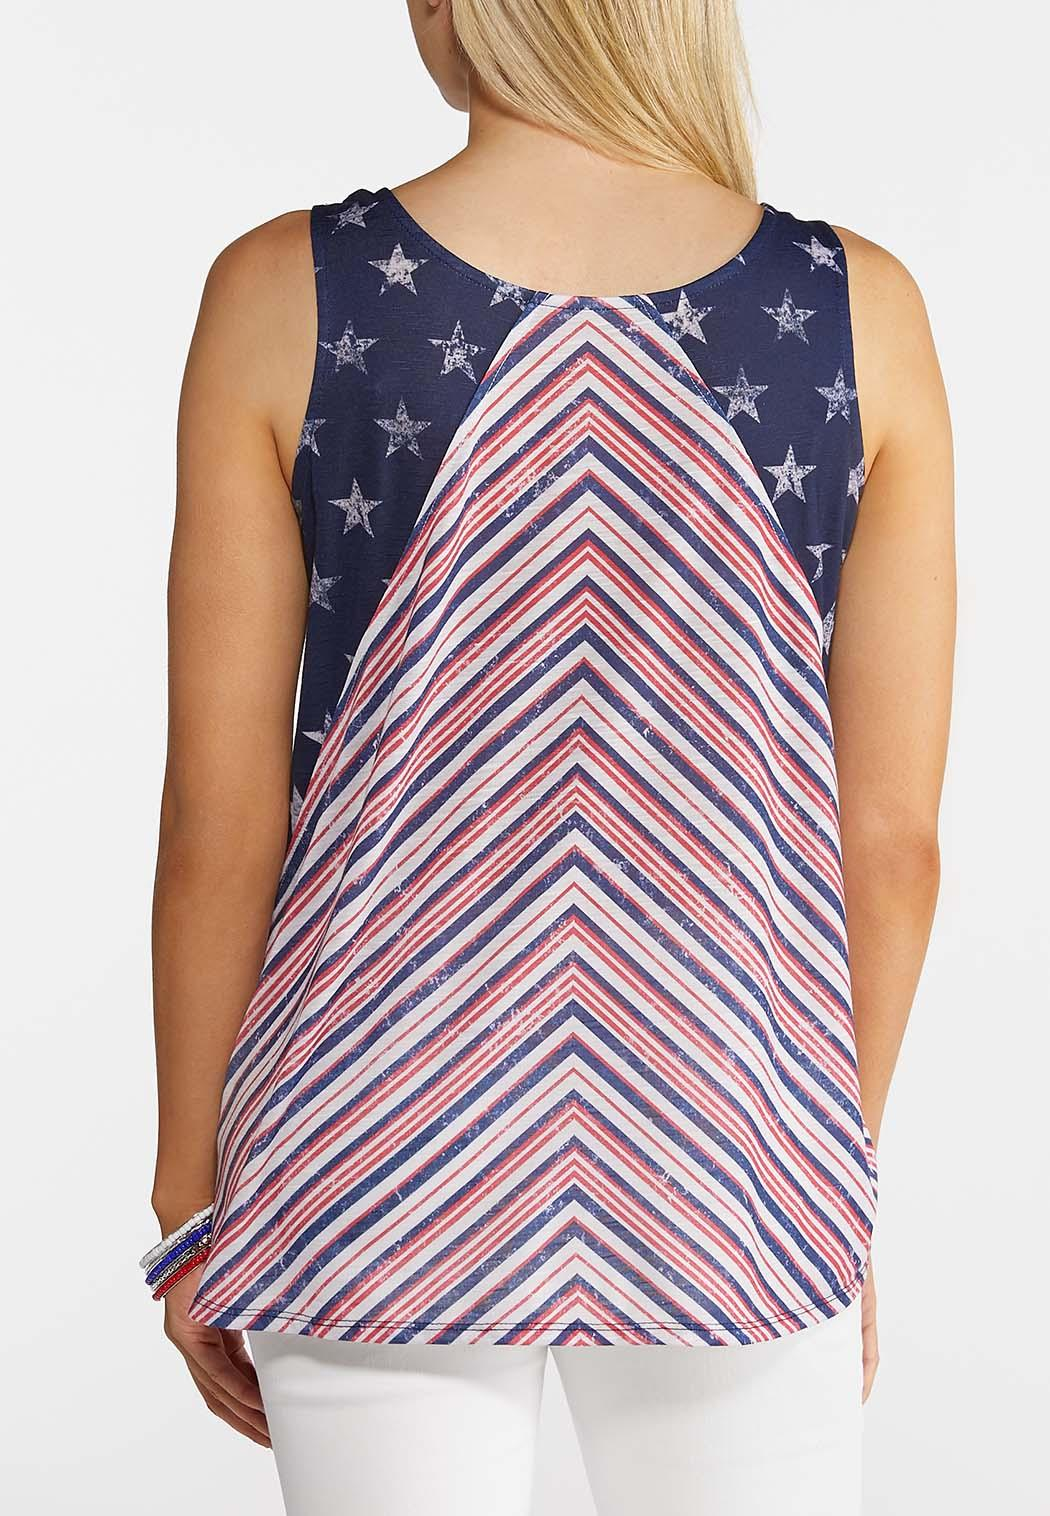 2bab61c394 Plus Size Stars And Stripes Tank Tops Cato Fashions